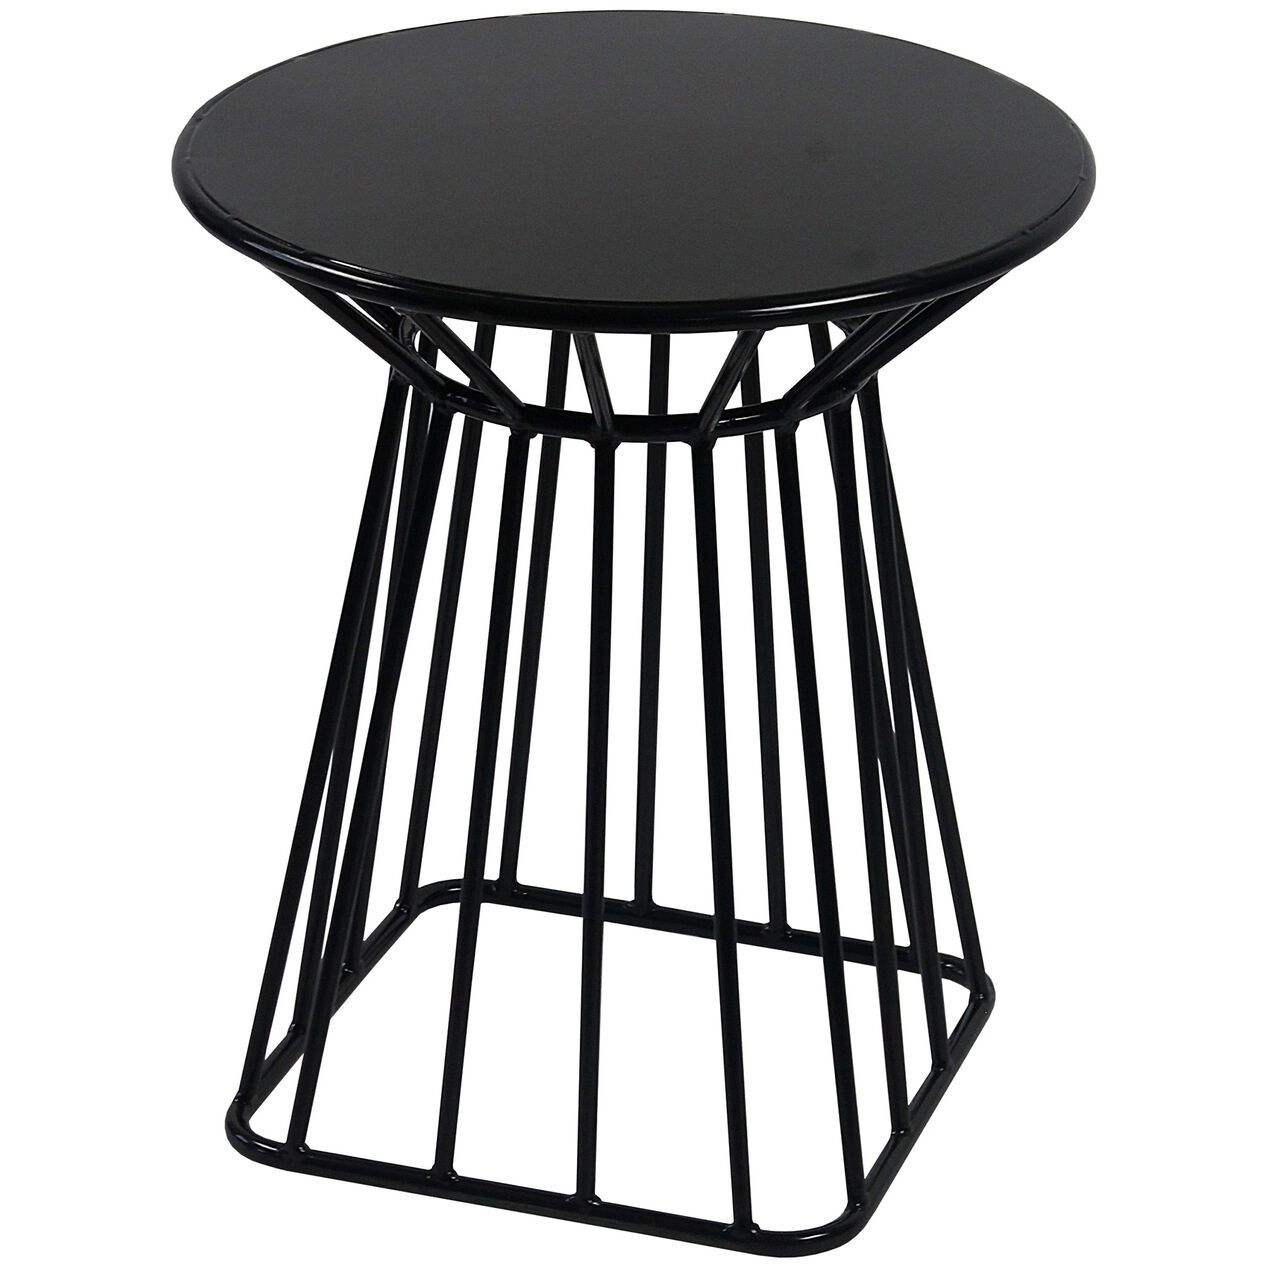 13+ White metal outdoor side table ideas in 2021